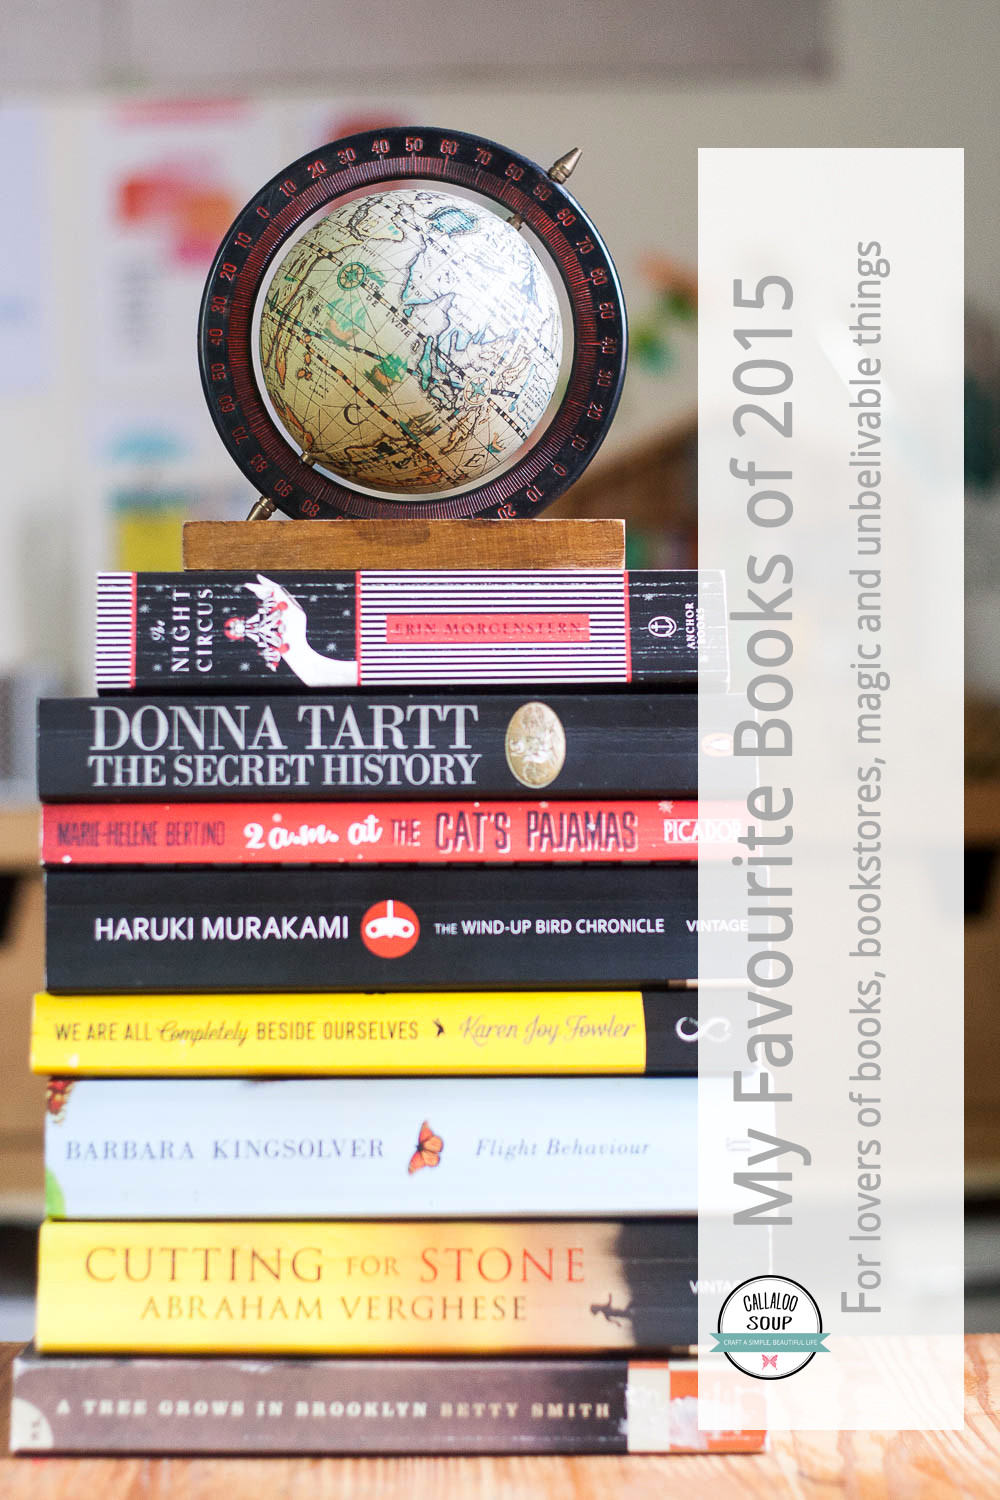 My Favourite Books of 2015 - Callaloo Soup Journal